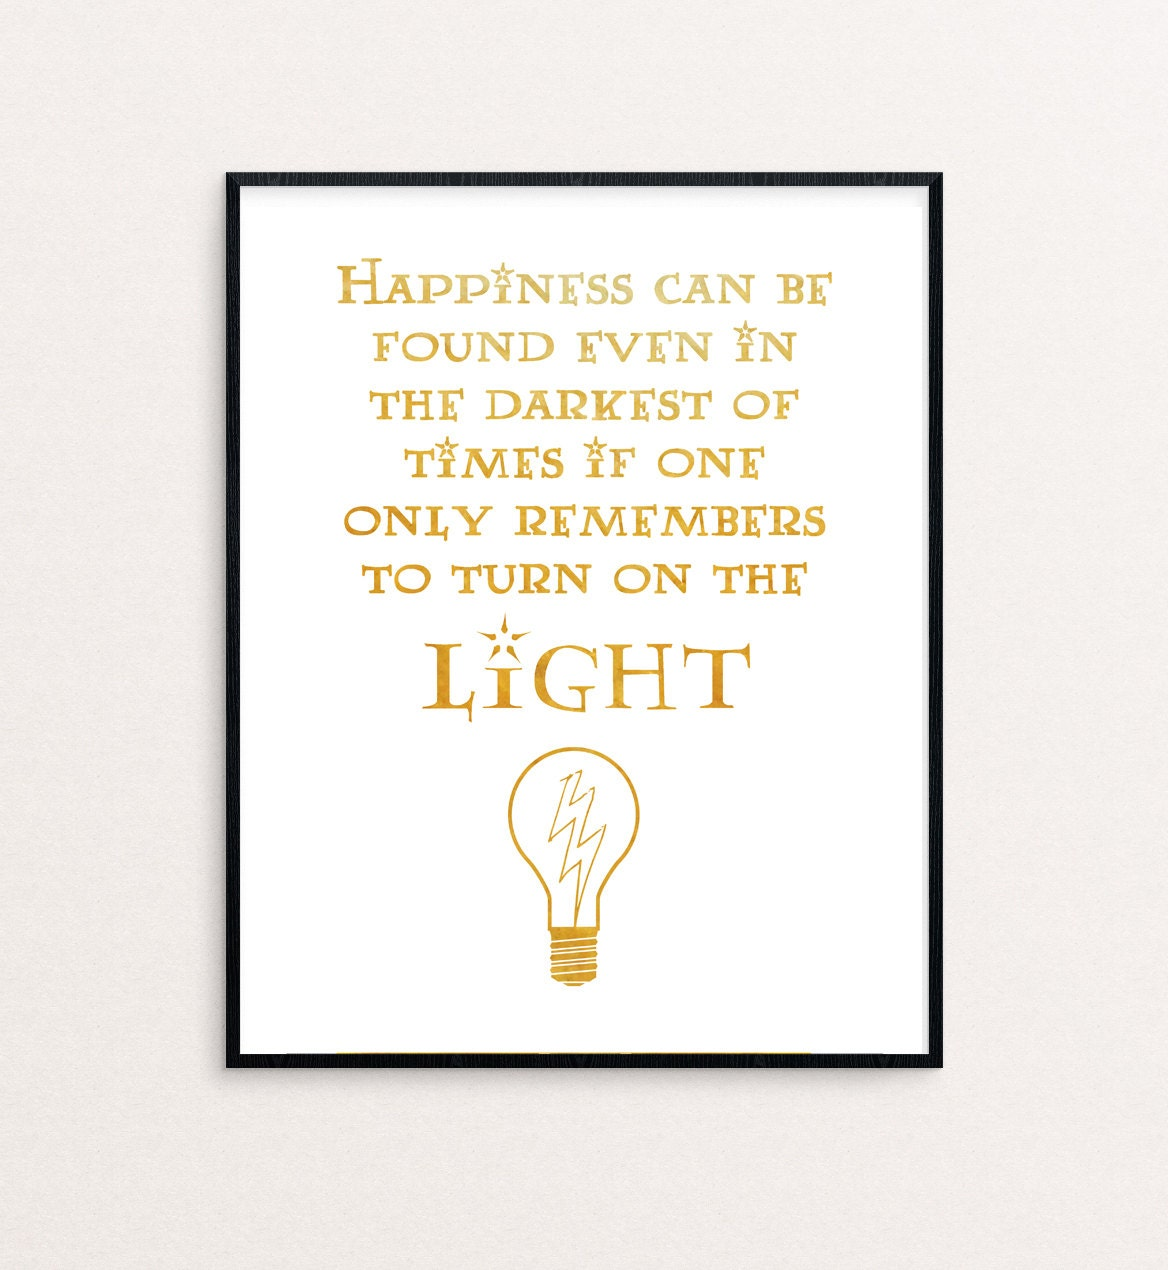 Happiness Can Be Found In The Darkest Of Times Quote: Dumbledore Quote Happiness Can Be Found Even In The